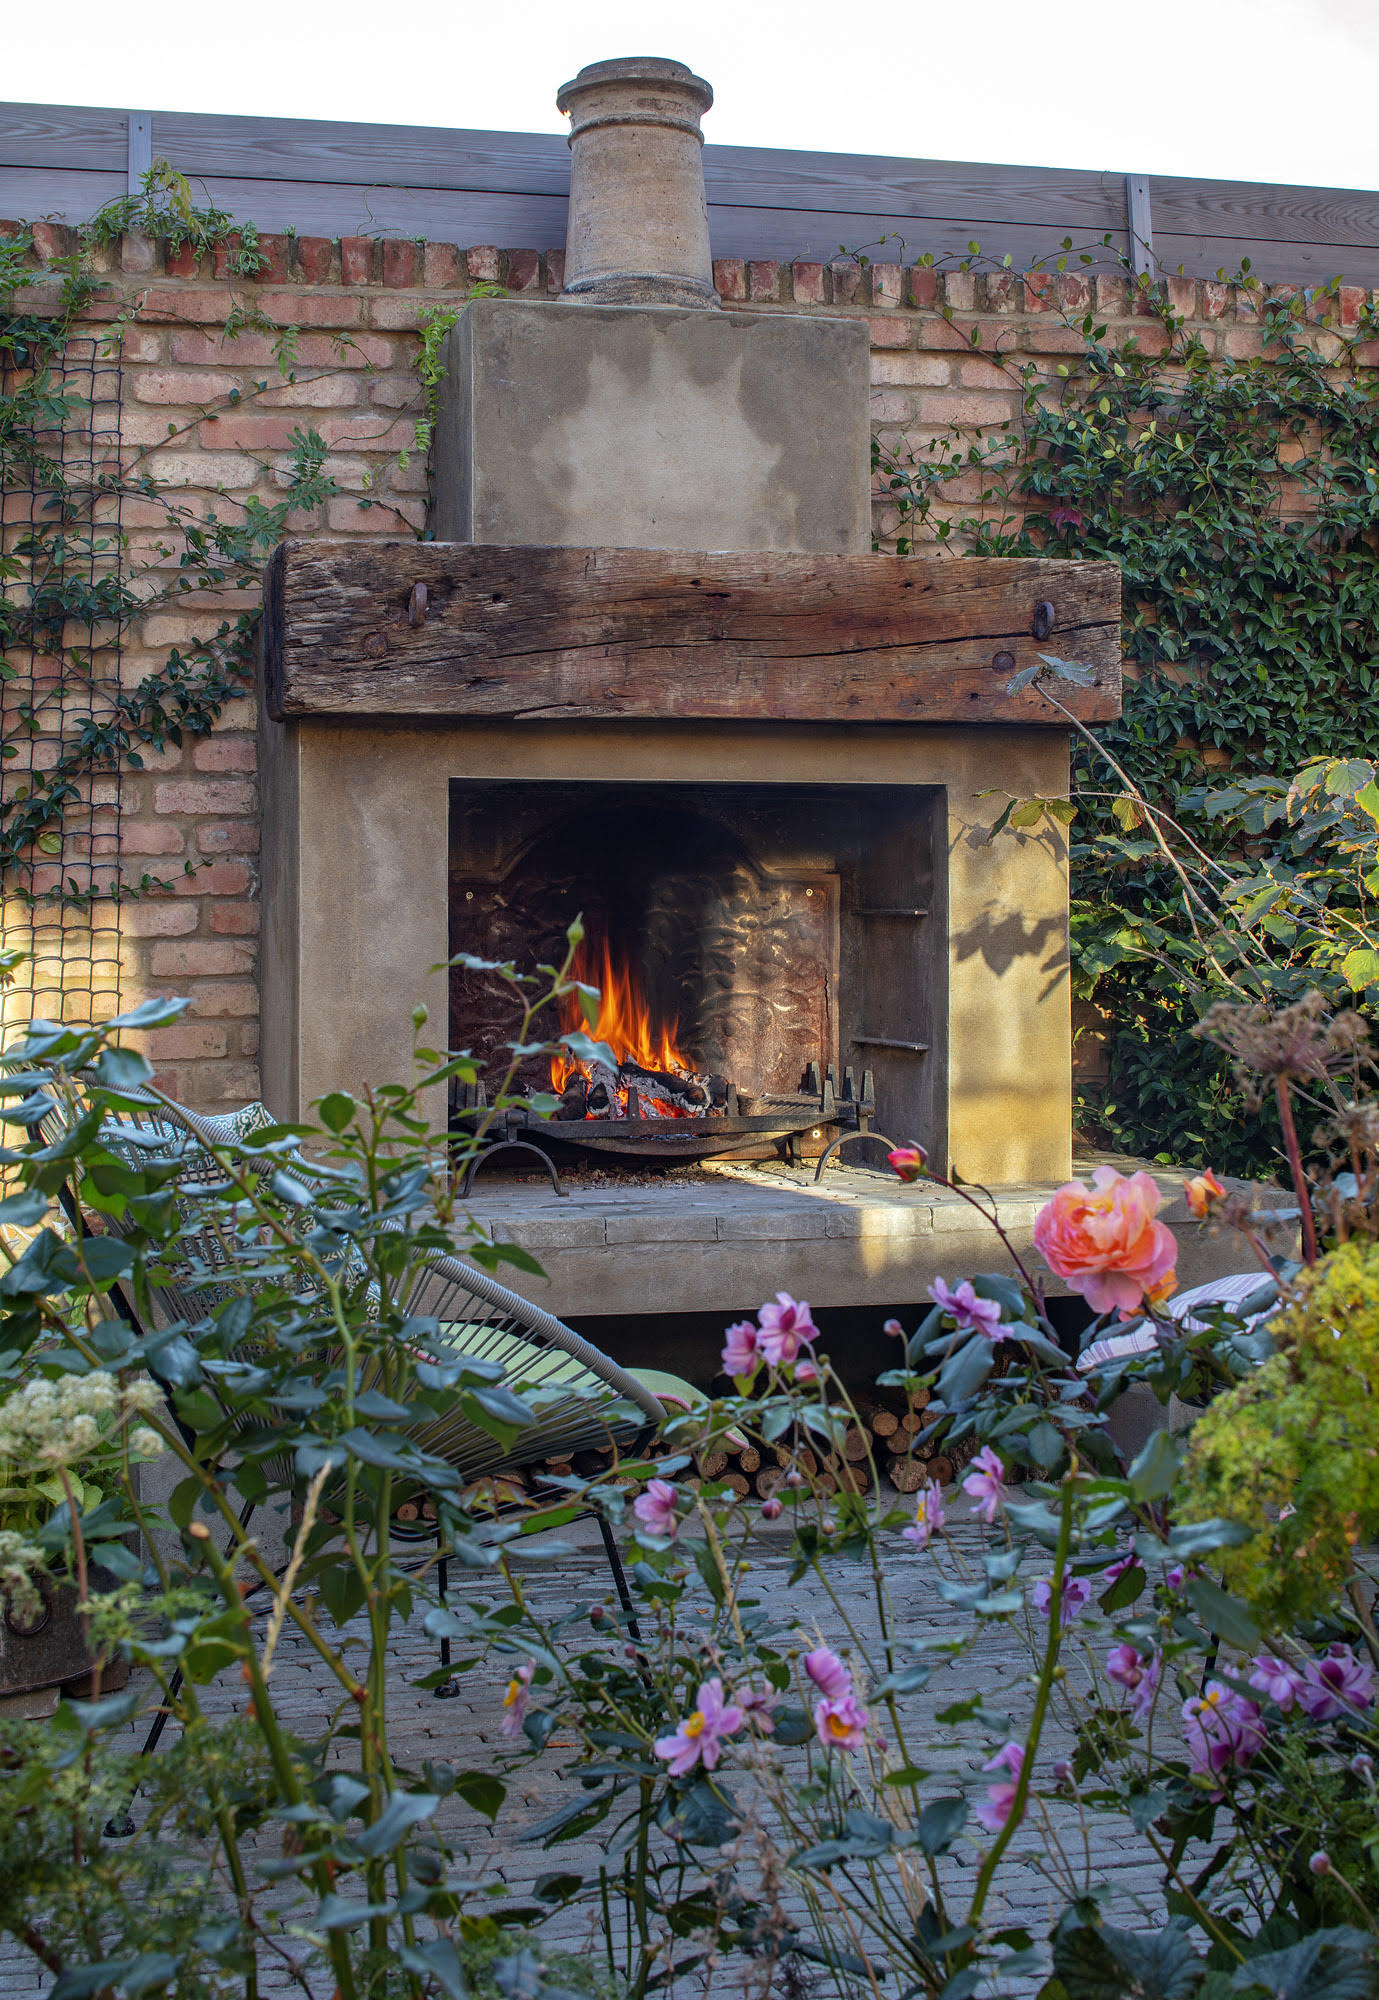 A fireplace in the courtyard garden. Photograph: Clive Nichols.